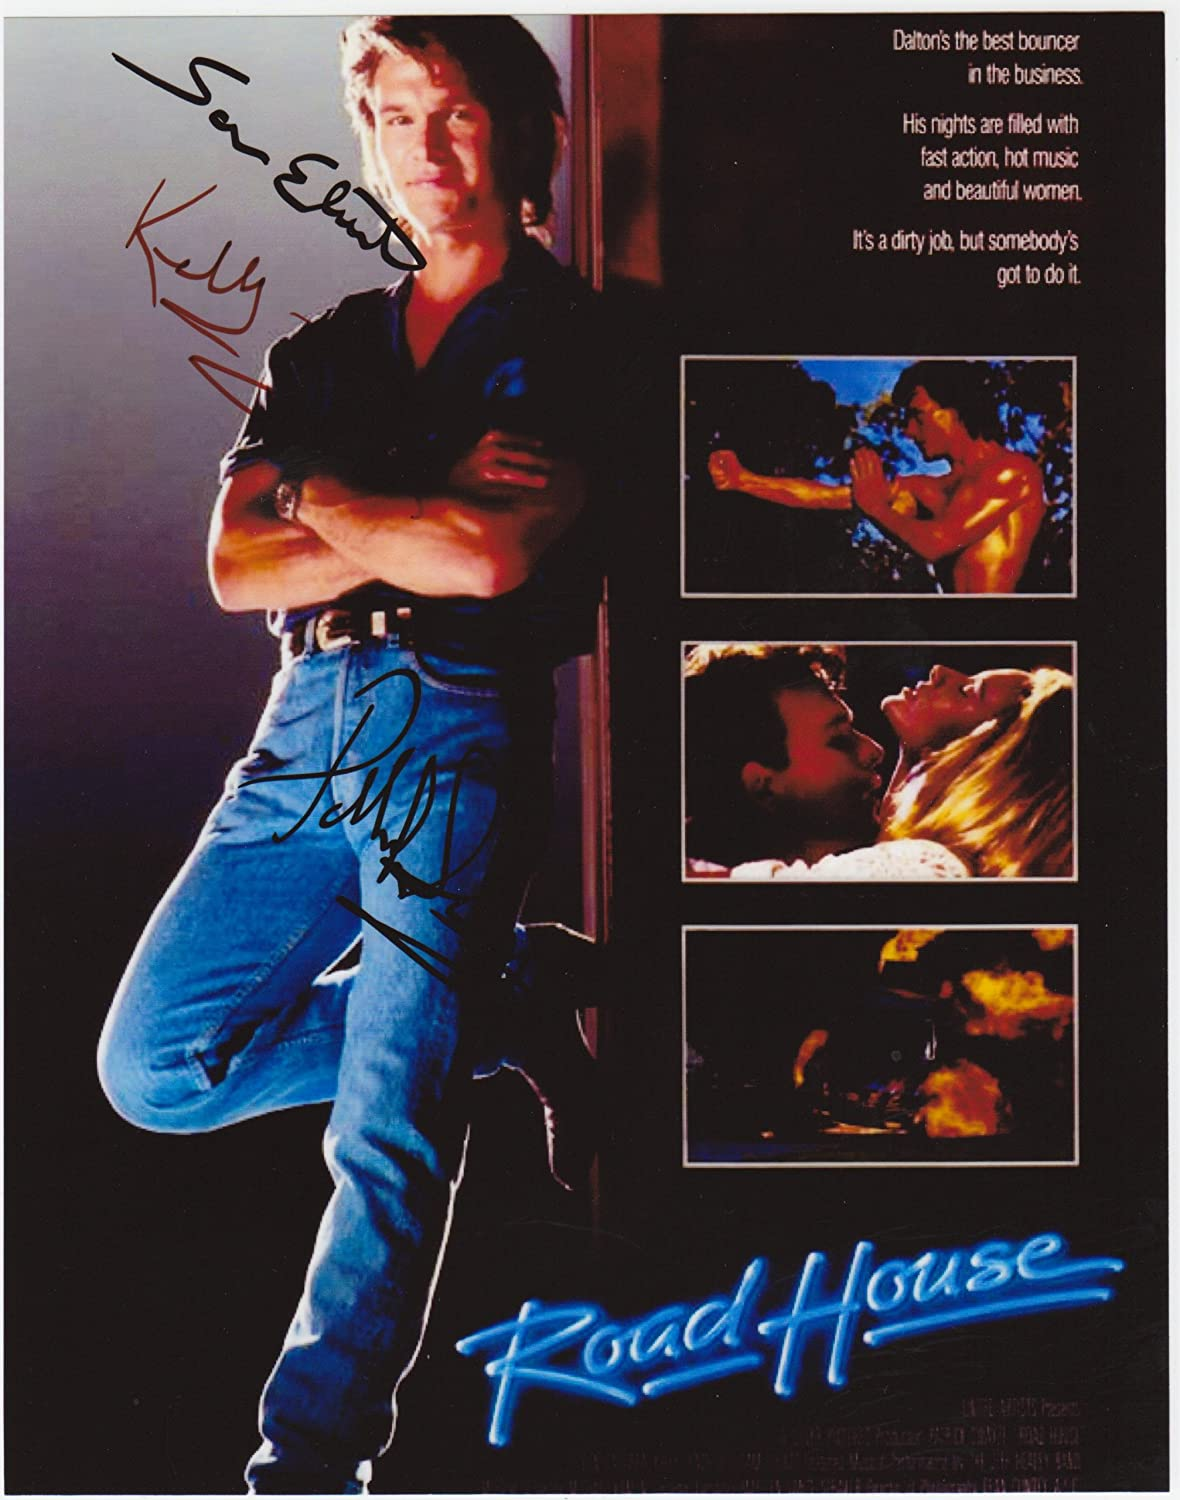 Kirkland Signature Road House 8 X 10 Movie Poster Autograph on Glossy Photo Paper